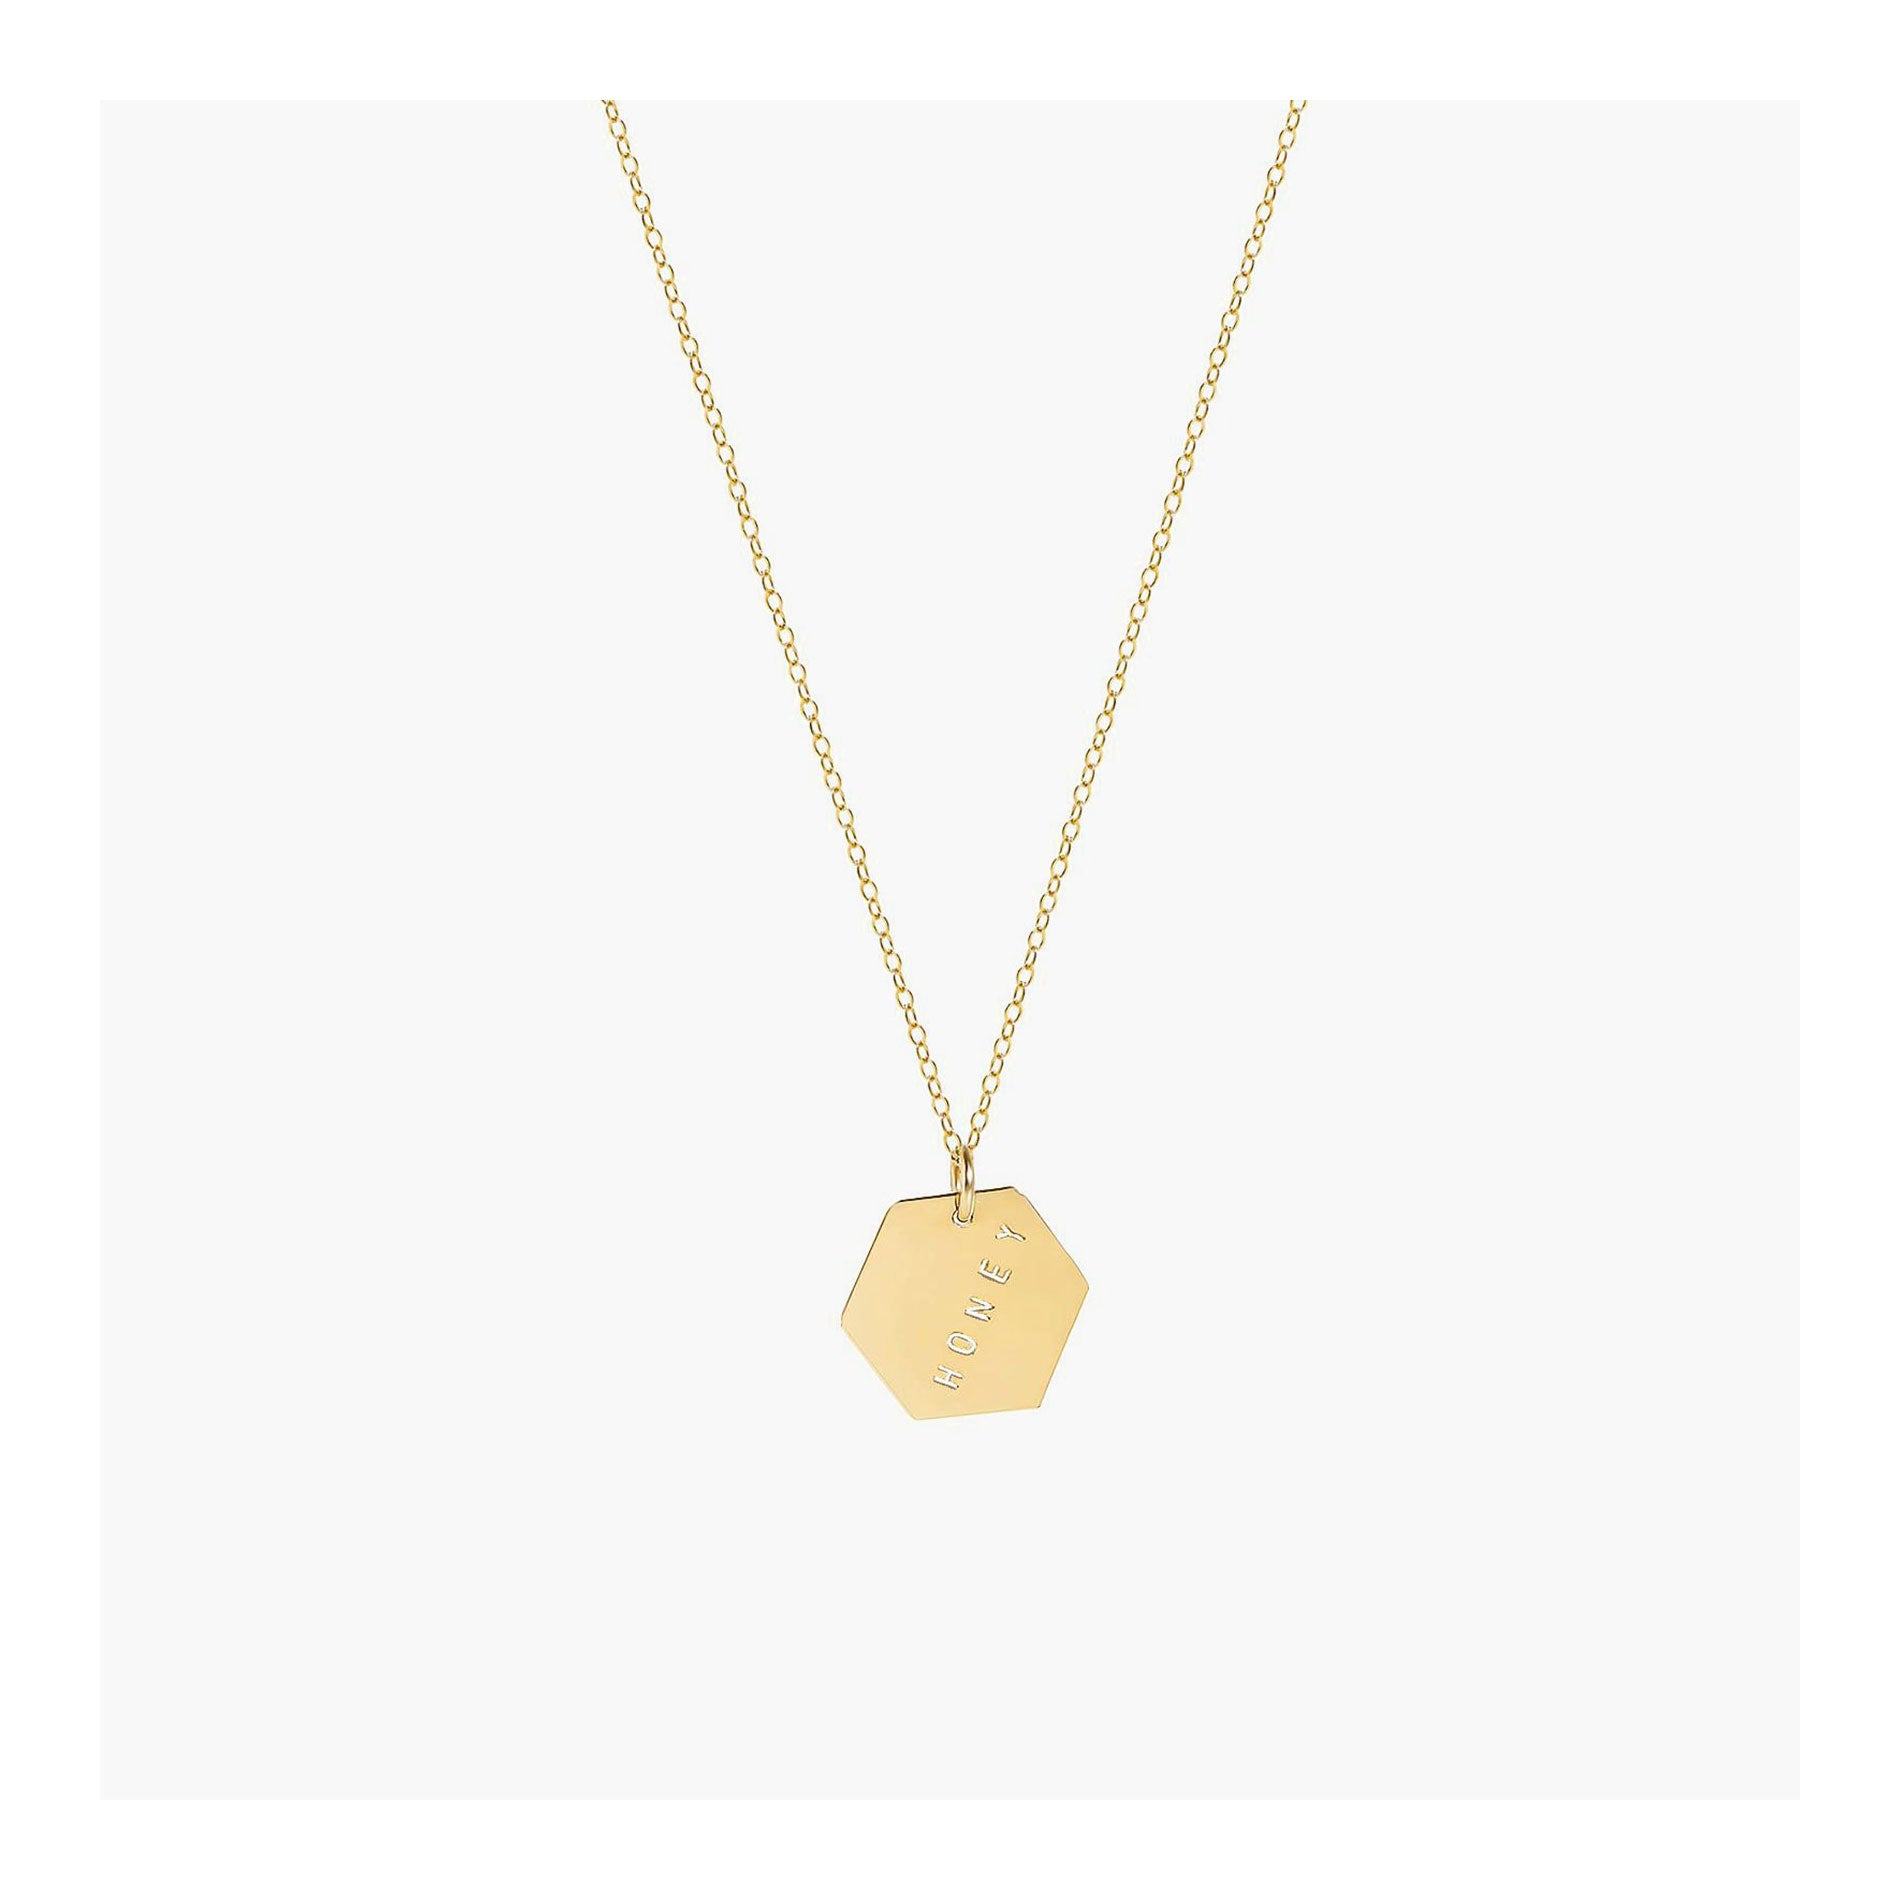 Hexagon necklace | Personalized pendant necklace | 14k gold filled